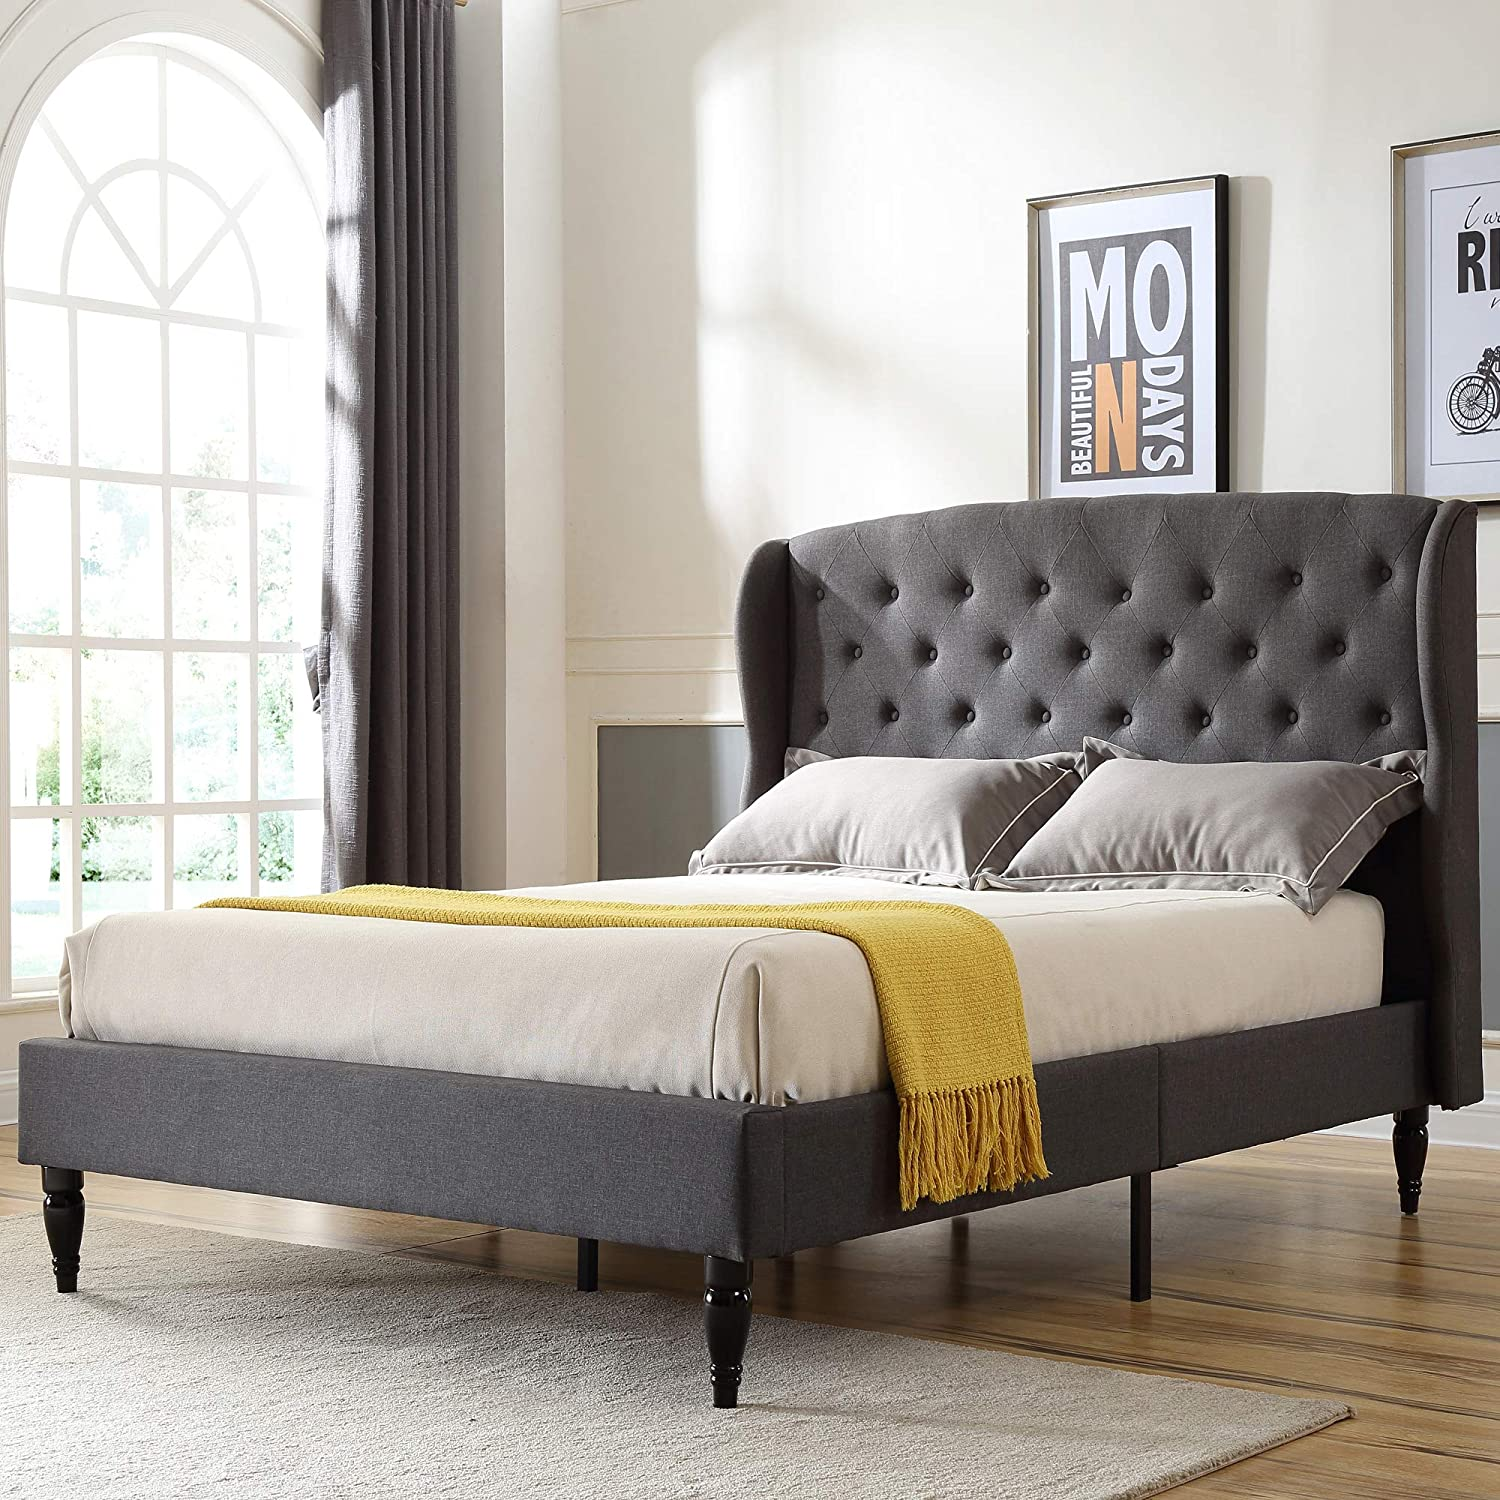 Coventry Upholstered Platform Bed Headboard and Metal Frame with Wood Slat Support Grey, Queen